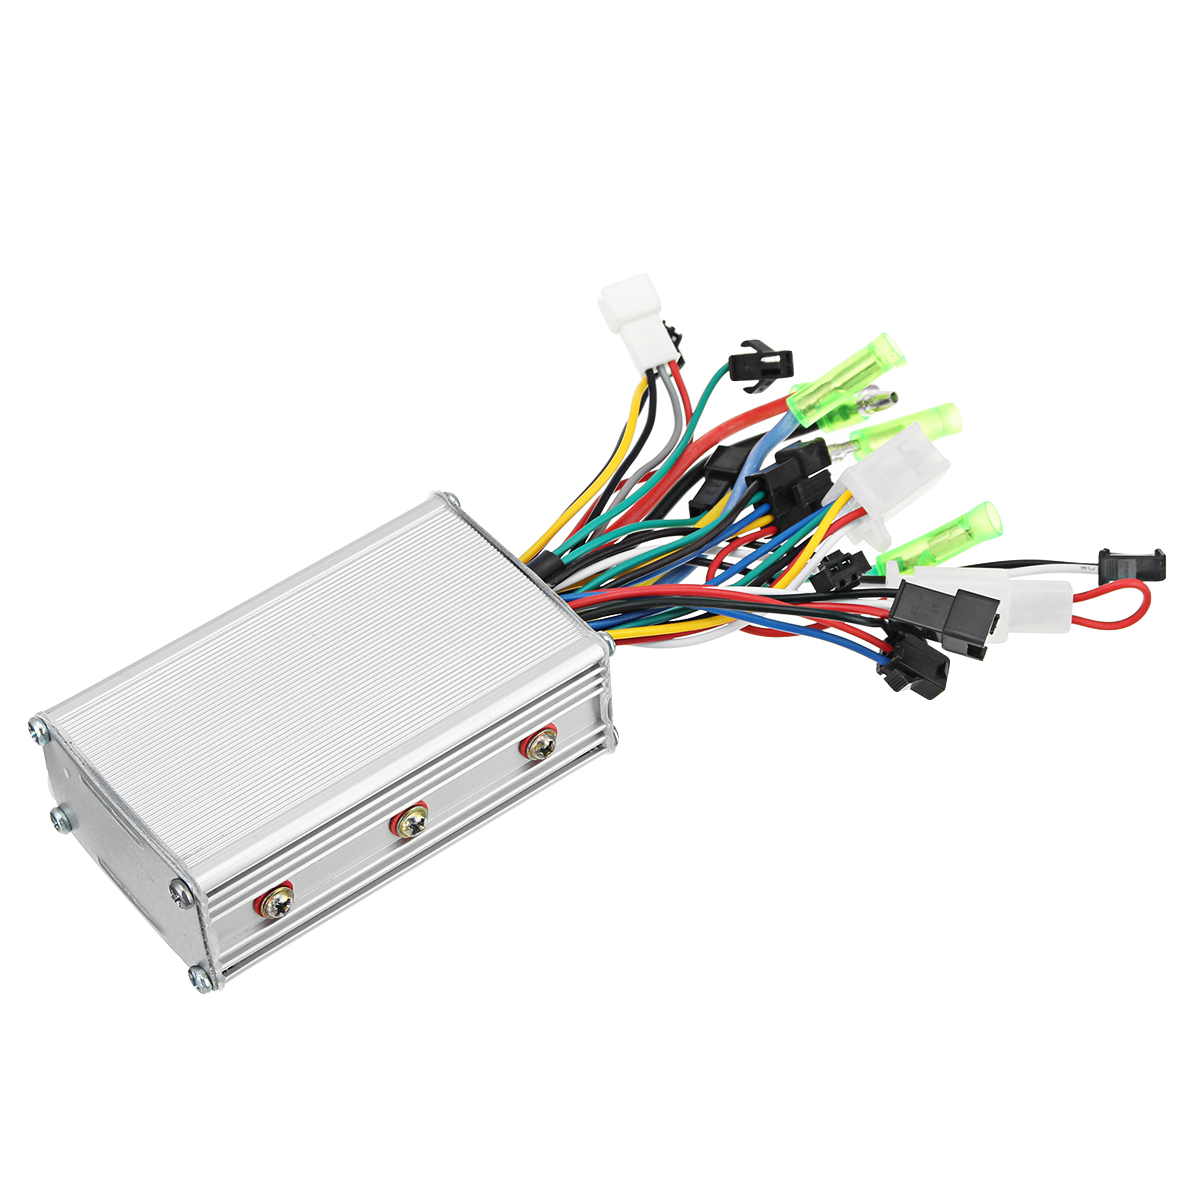 24V-36V 250W Brushless Controller with LCD Display Waterproof For Electic Scooter E-Bike